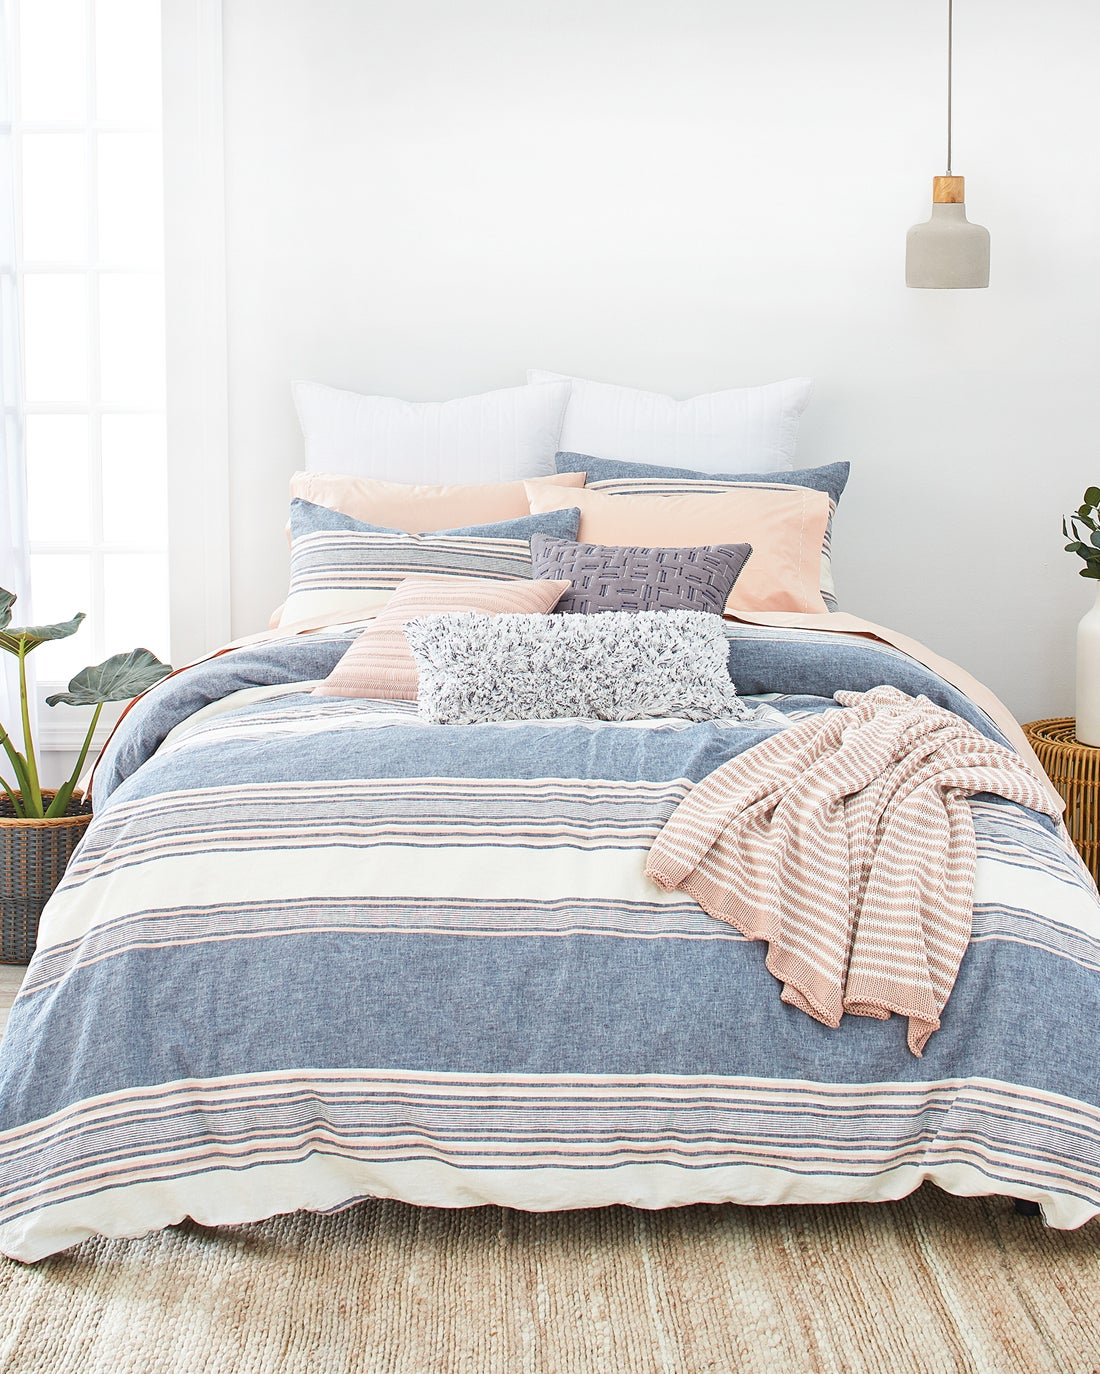 The relaxed, and effortlessly chic Tuscan Stripe Collection takes its design cue from the signature stripes and muted palette of Splendid\'s apparel and brings the same easy-going style into the bedroom. The linen-cotton, yarn-dyed stripes adding classic appeal and undeniable style.